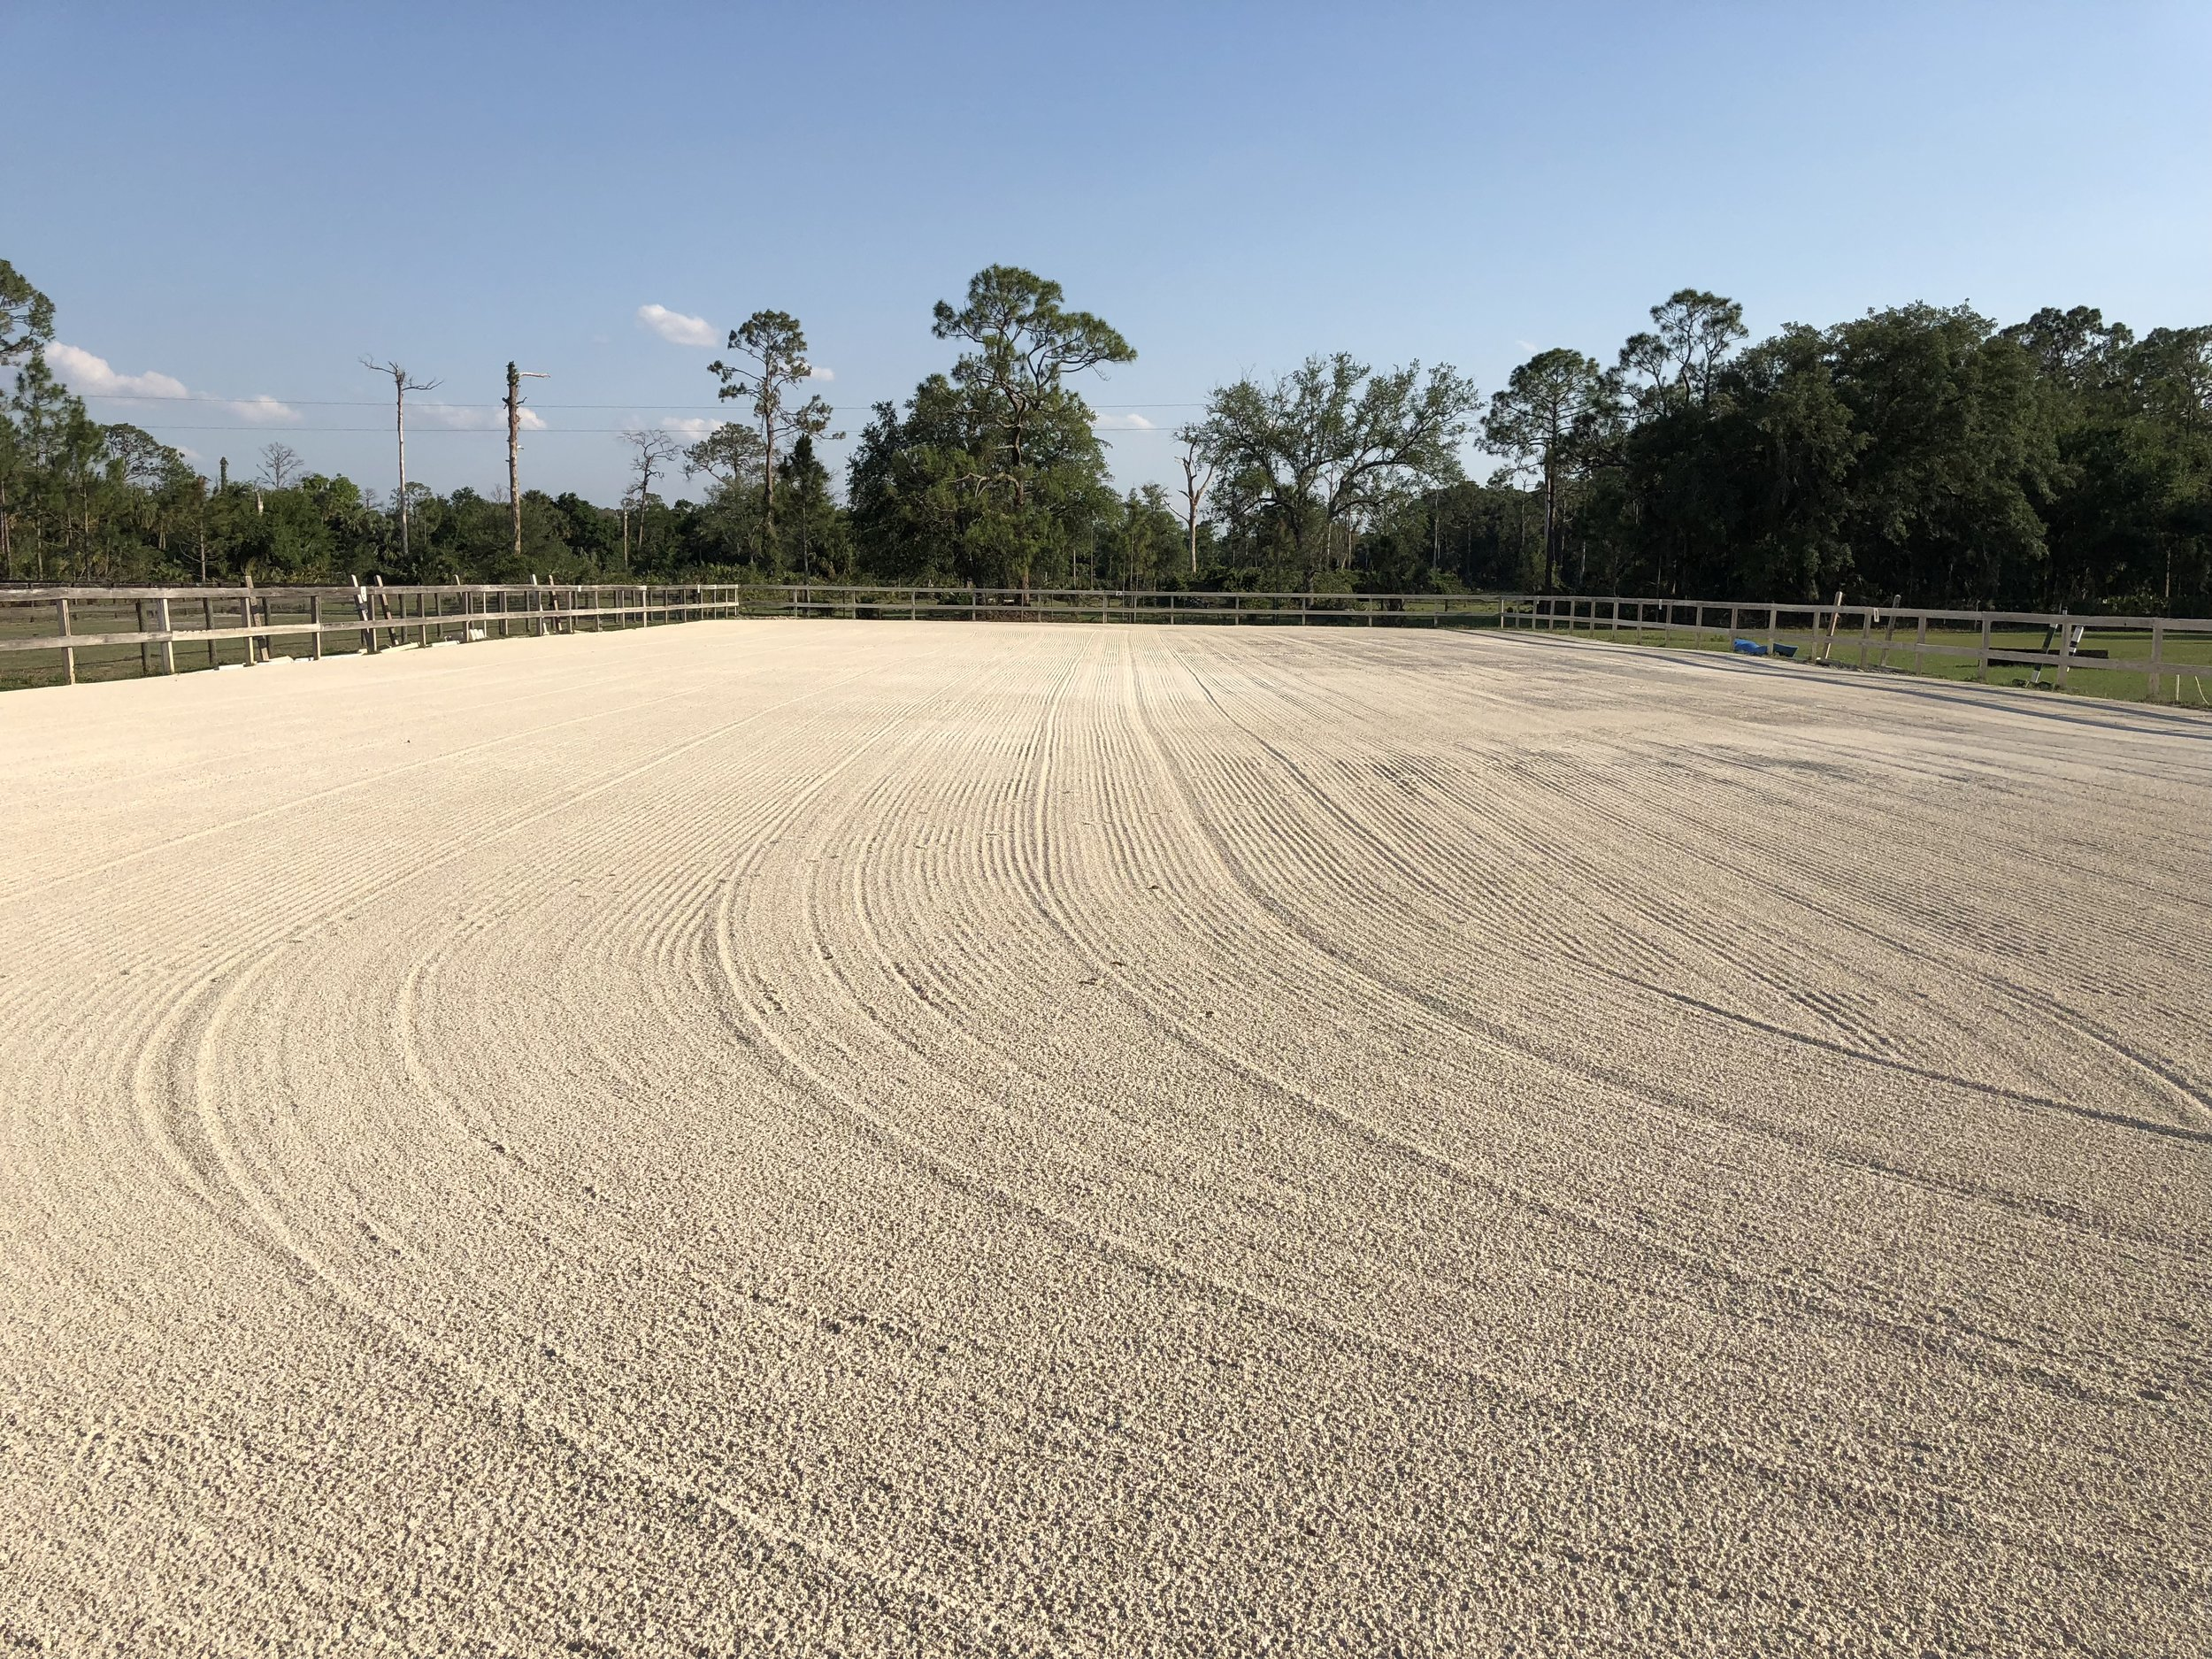 OPEN ARENA - The open arena near the farm entrance is also comprised of screenings, fenced and irrigated. It was renovated with new screenings in April 2018, and is typically used for both flatwork and jumping.